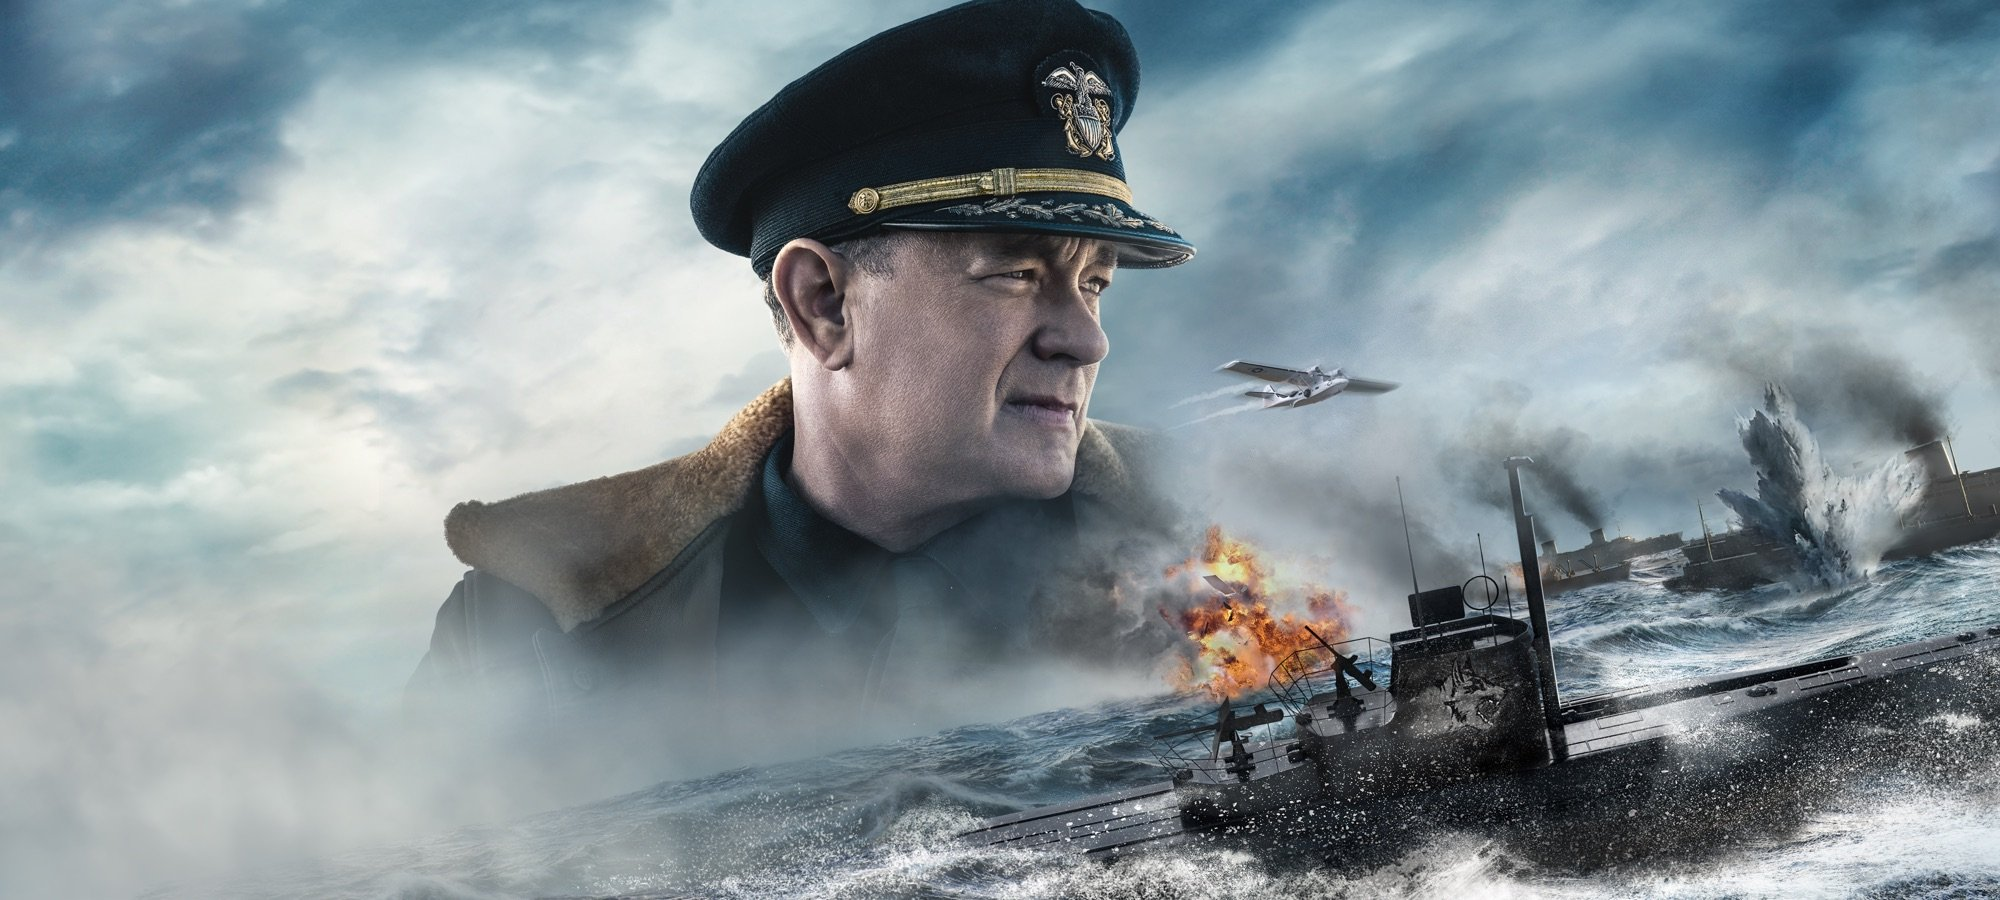 Bannière du film USS Greyhound: La bataille de l'Atlantique avec Tom Hanks